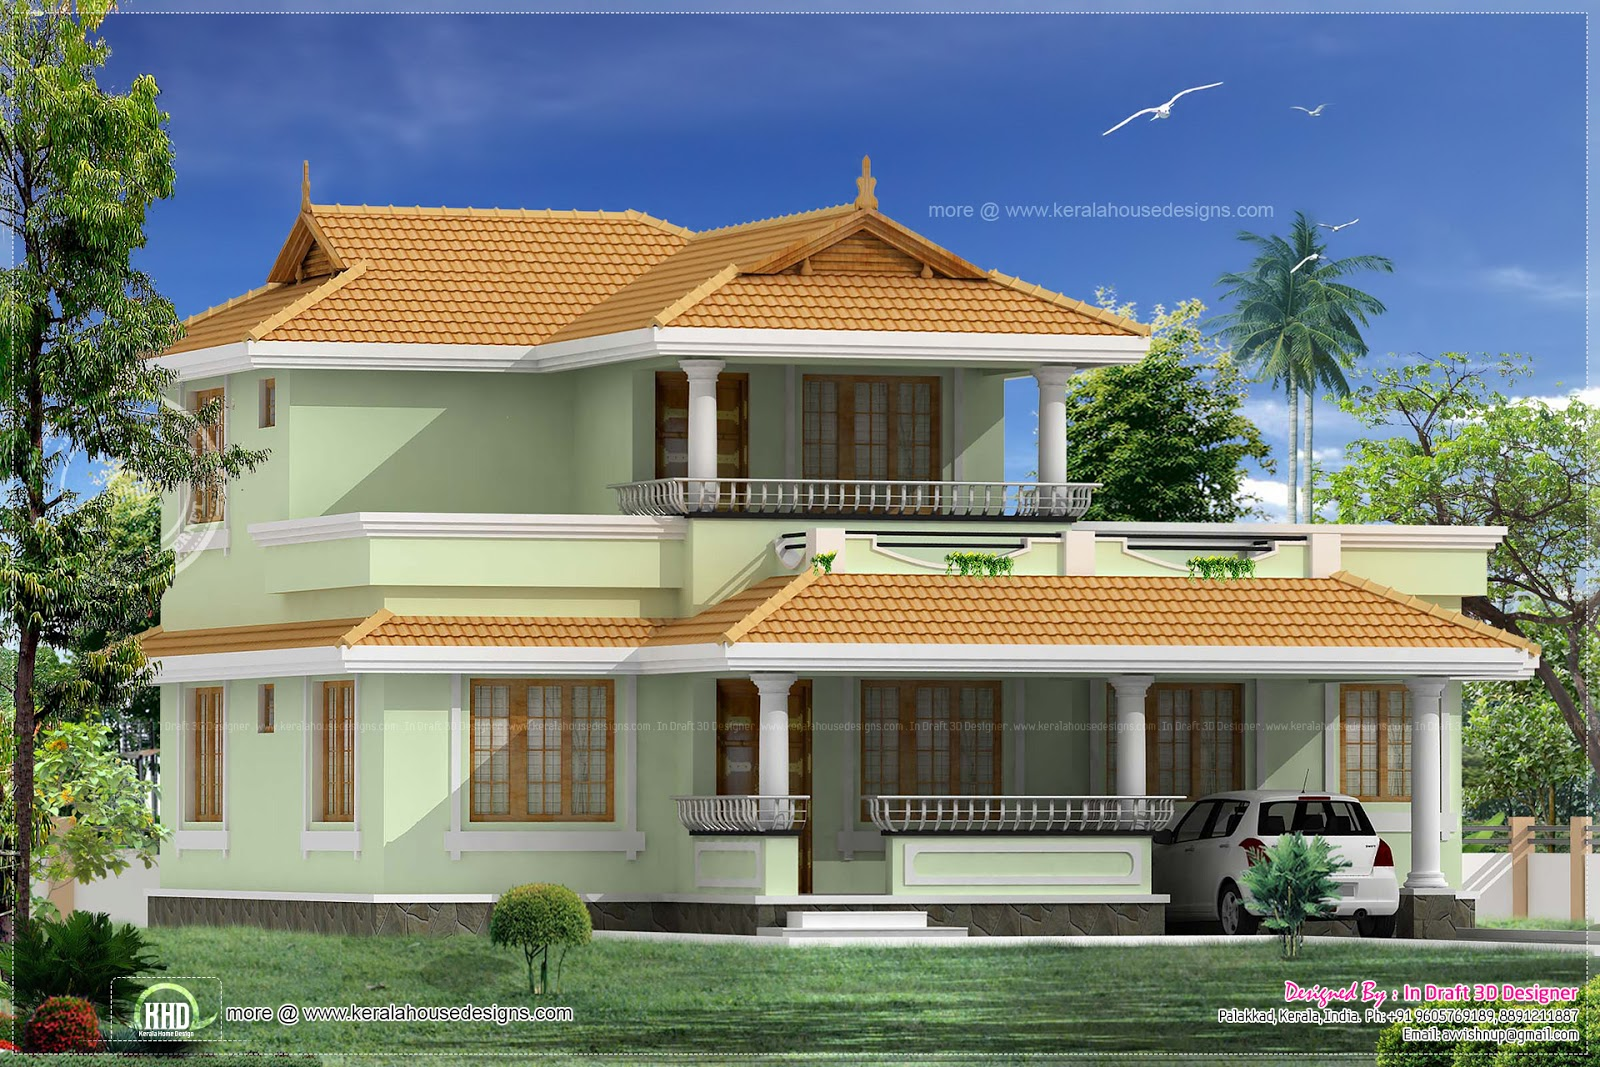 3 bed room kerala traditional villa in 1754 sqft kerala